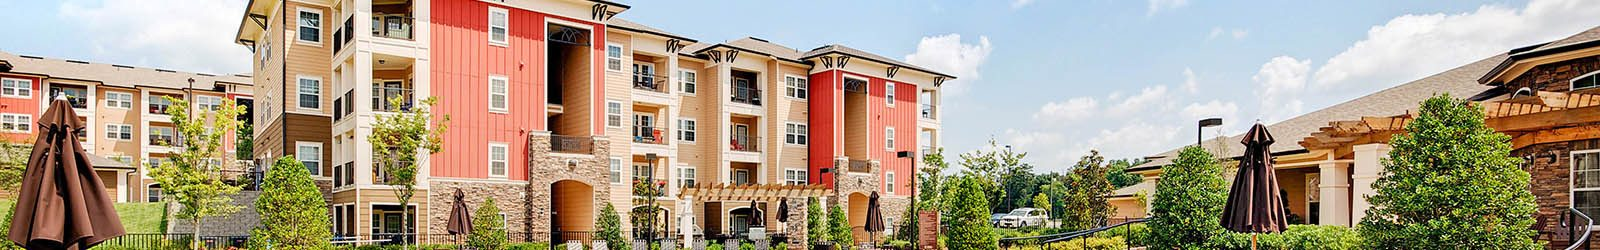 Schedule an apartment tour in Ooltewah